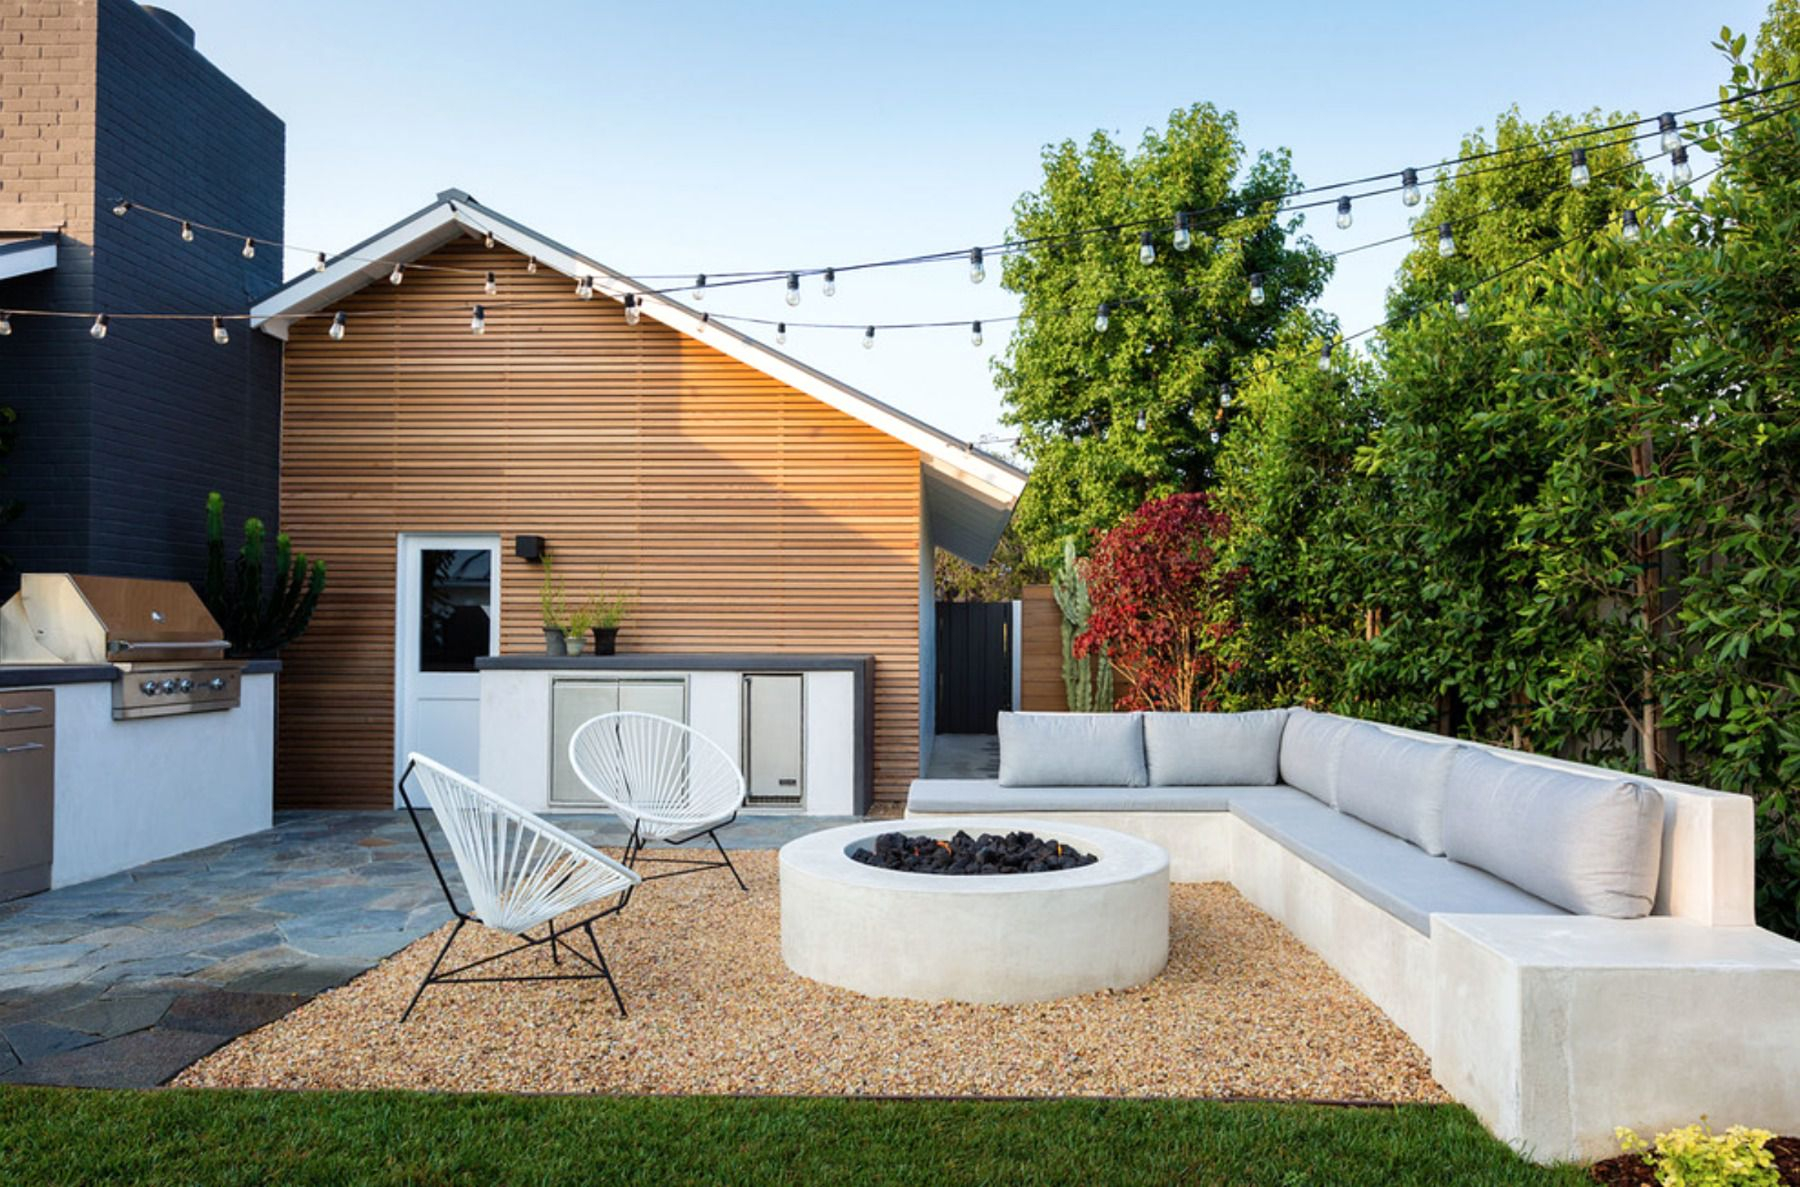 50 Backyard Landscaping Ideas To Inspire You with 11 Awesome Tricks of How to Make House Backyard Ideas